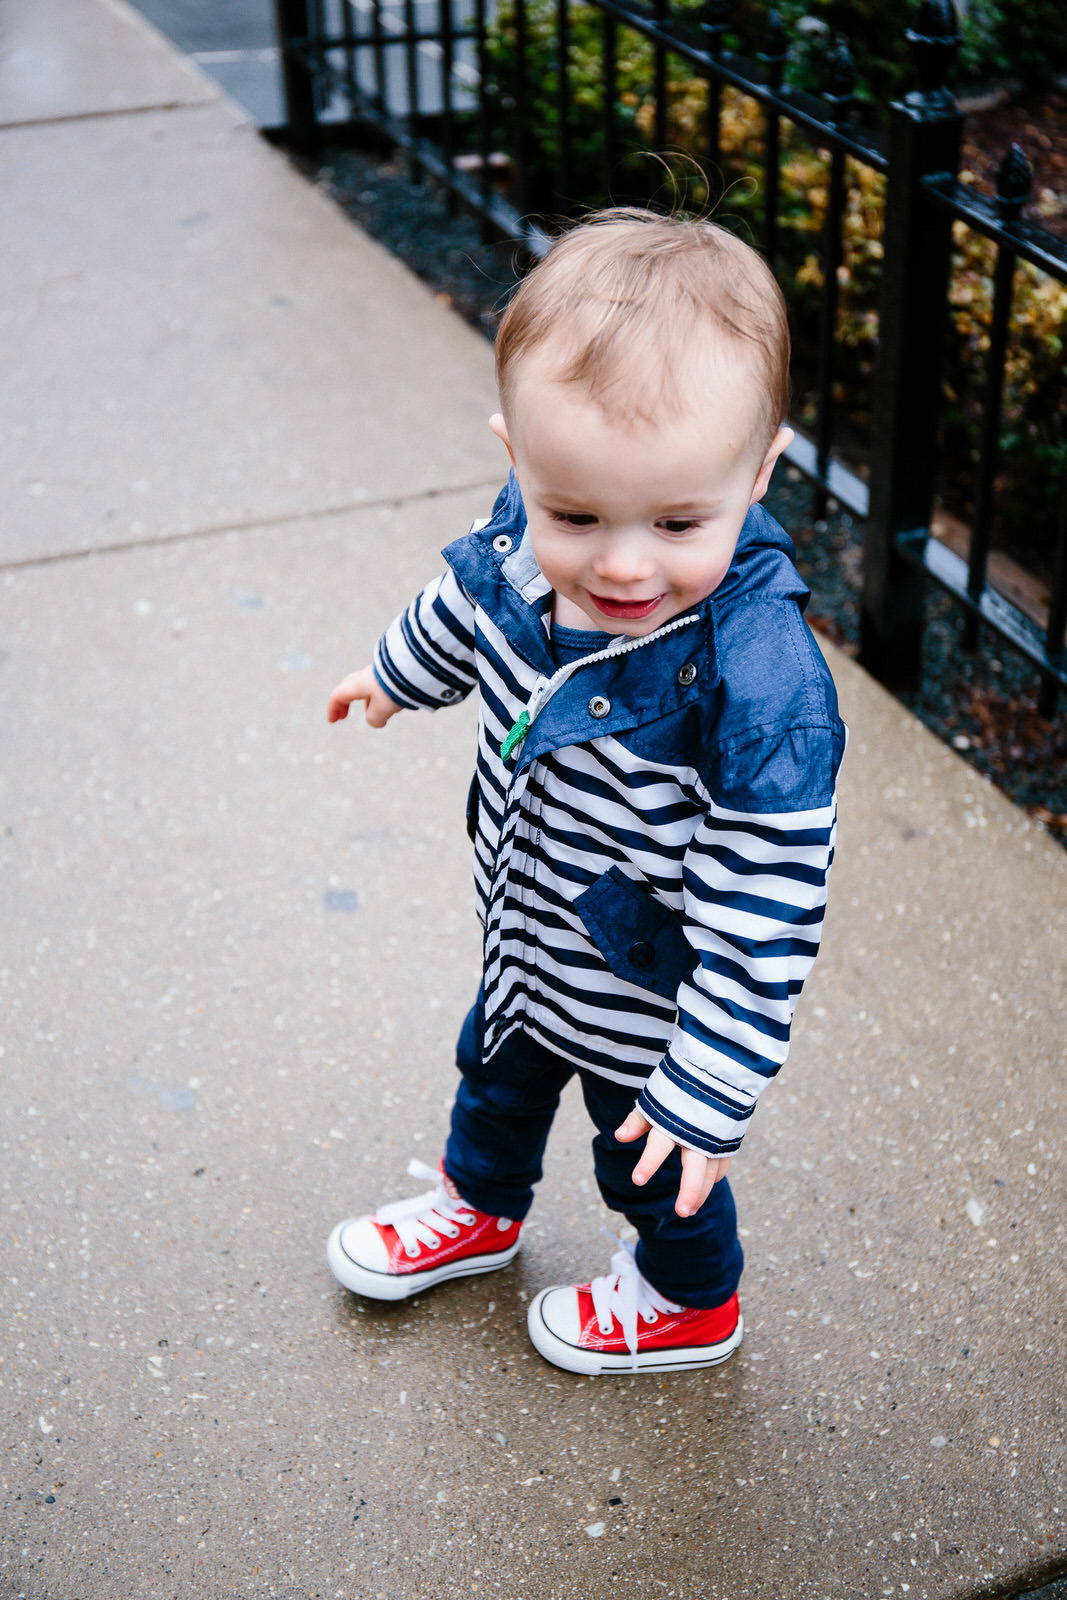 Baby boy wearing high top converse sneakers and stripe rain coat.